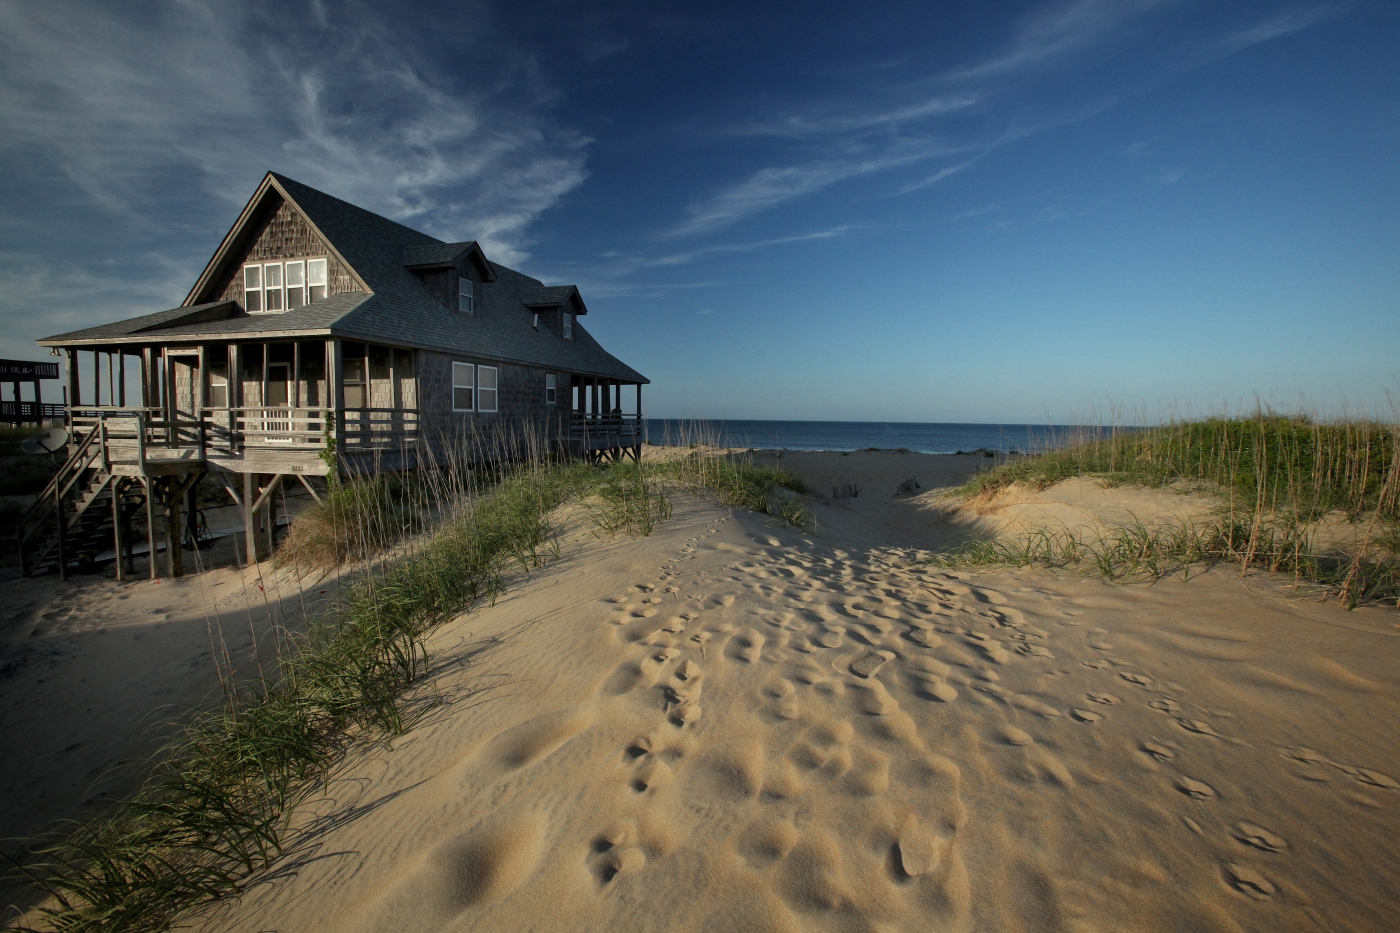 The Outer Banks and all North Carolina beaches have beautiful homes for short- and long-term rentals.